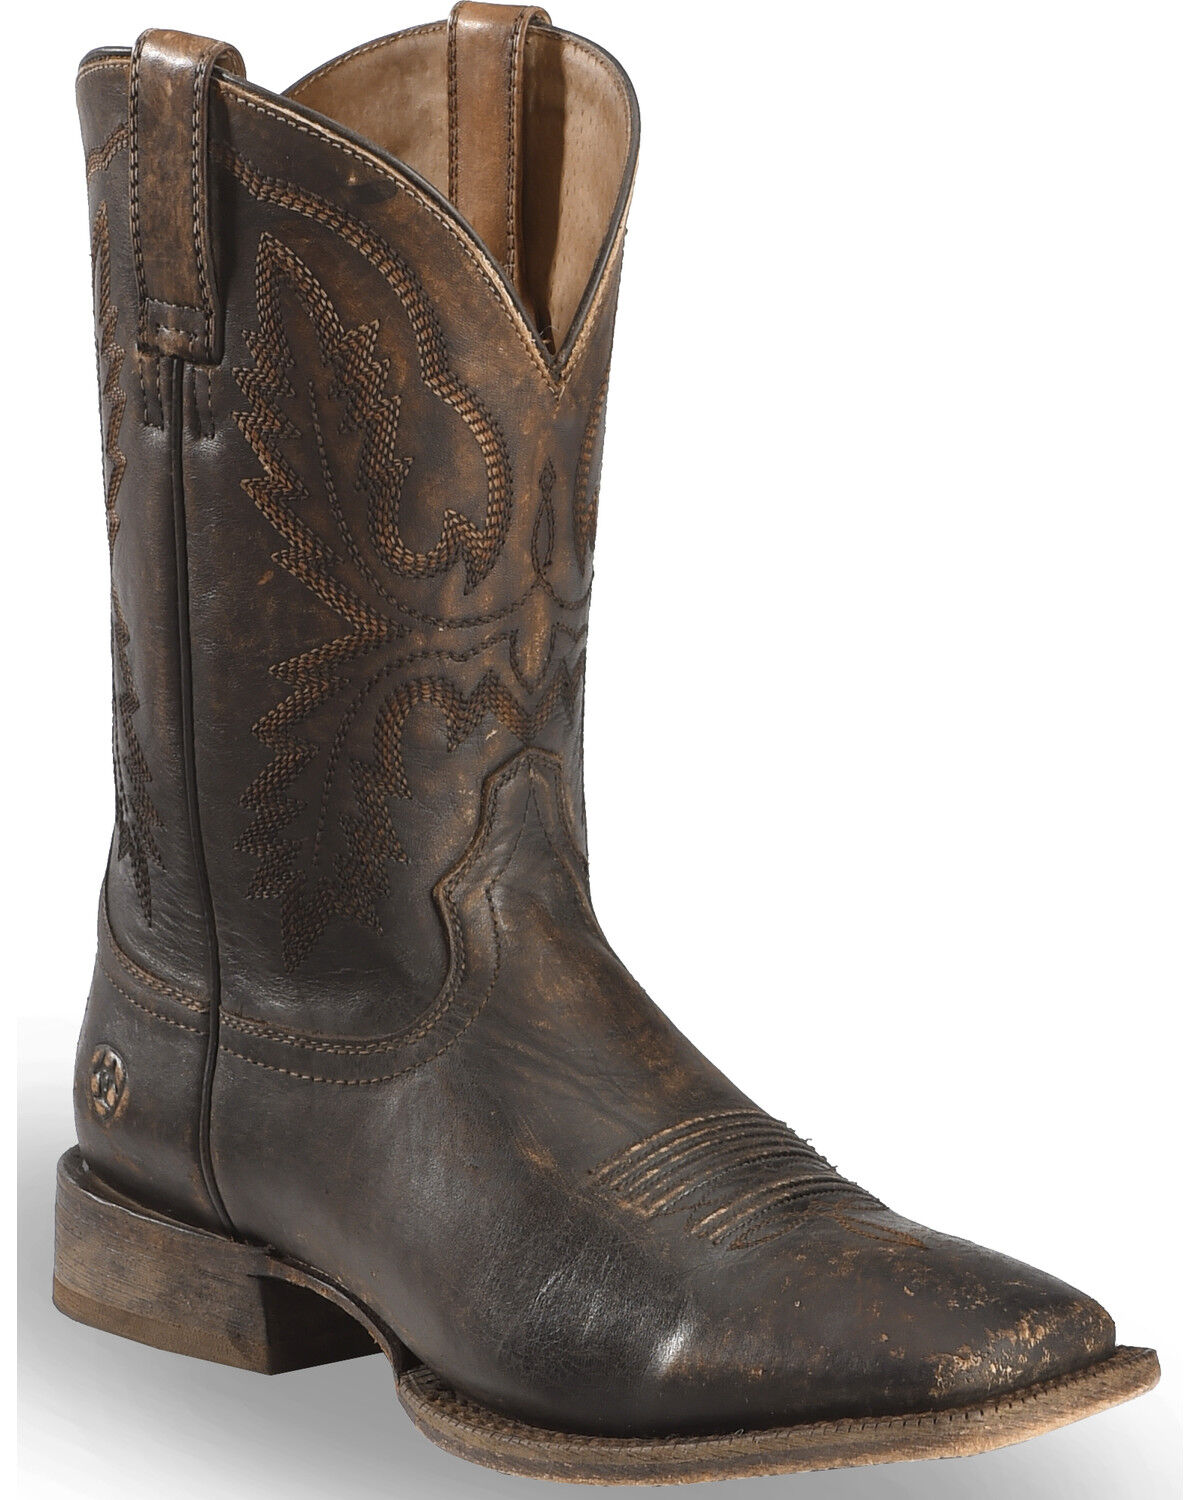 Ariat Mens Distressed Brown Western Cowboy Boots